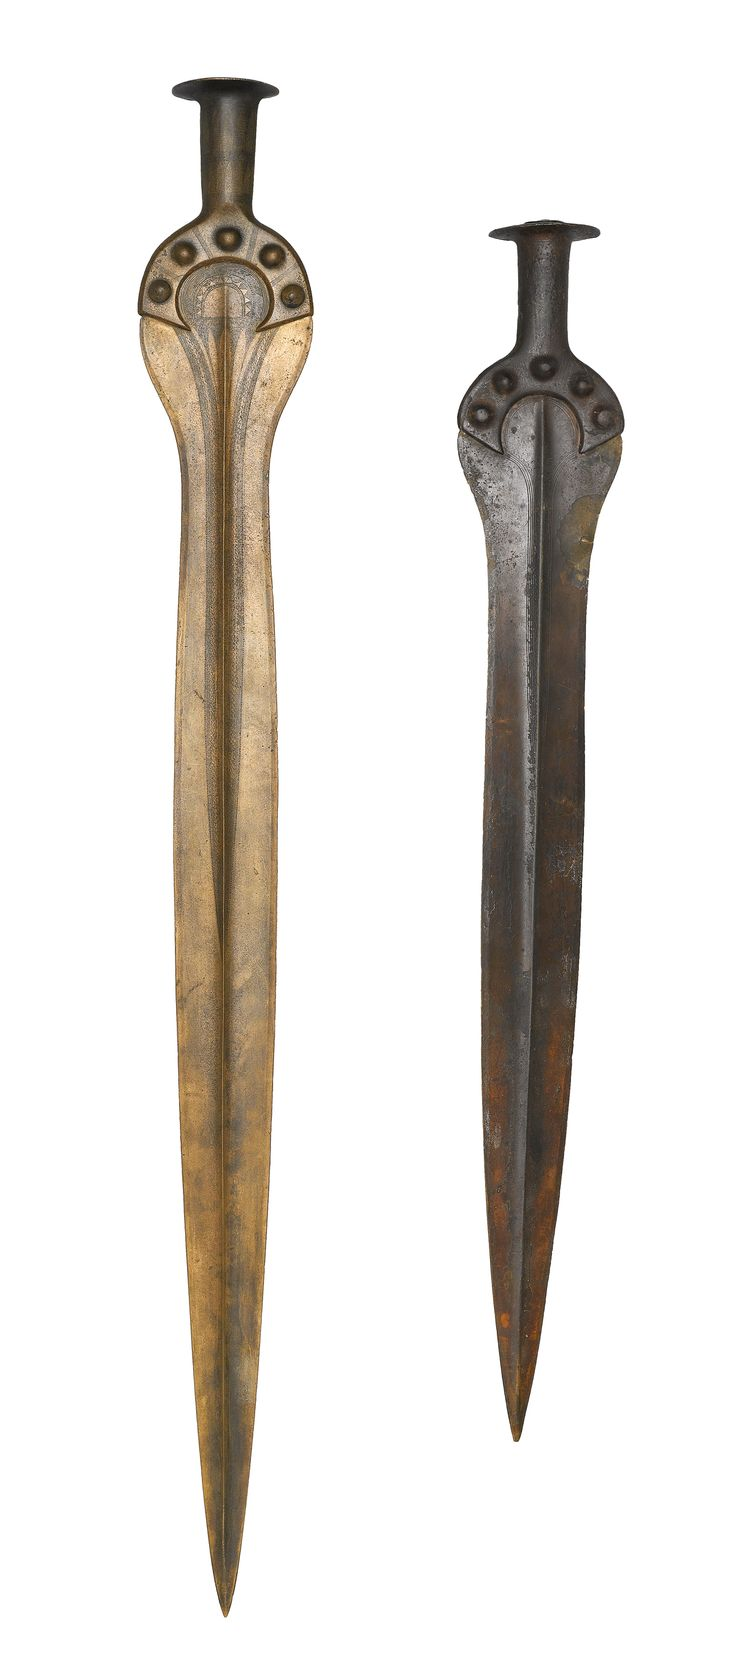 Imported swords from Åmosen and Stensgård. Many objects found in Denmark testify to long-distance trade networks. The swords from Stensgård and Torupgårde were made in Hungary or Romania.